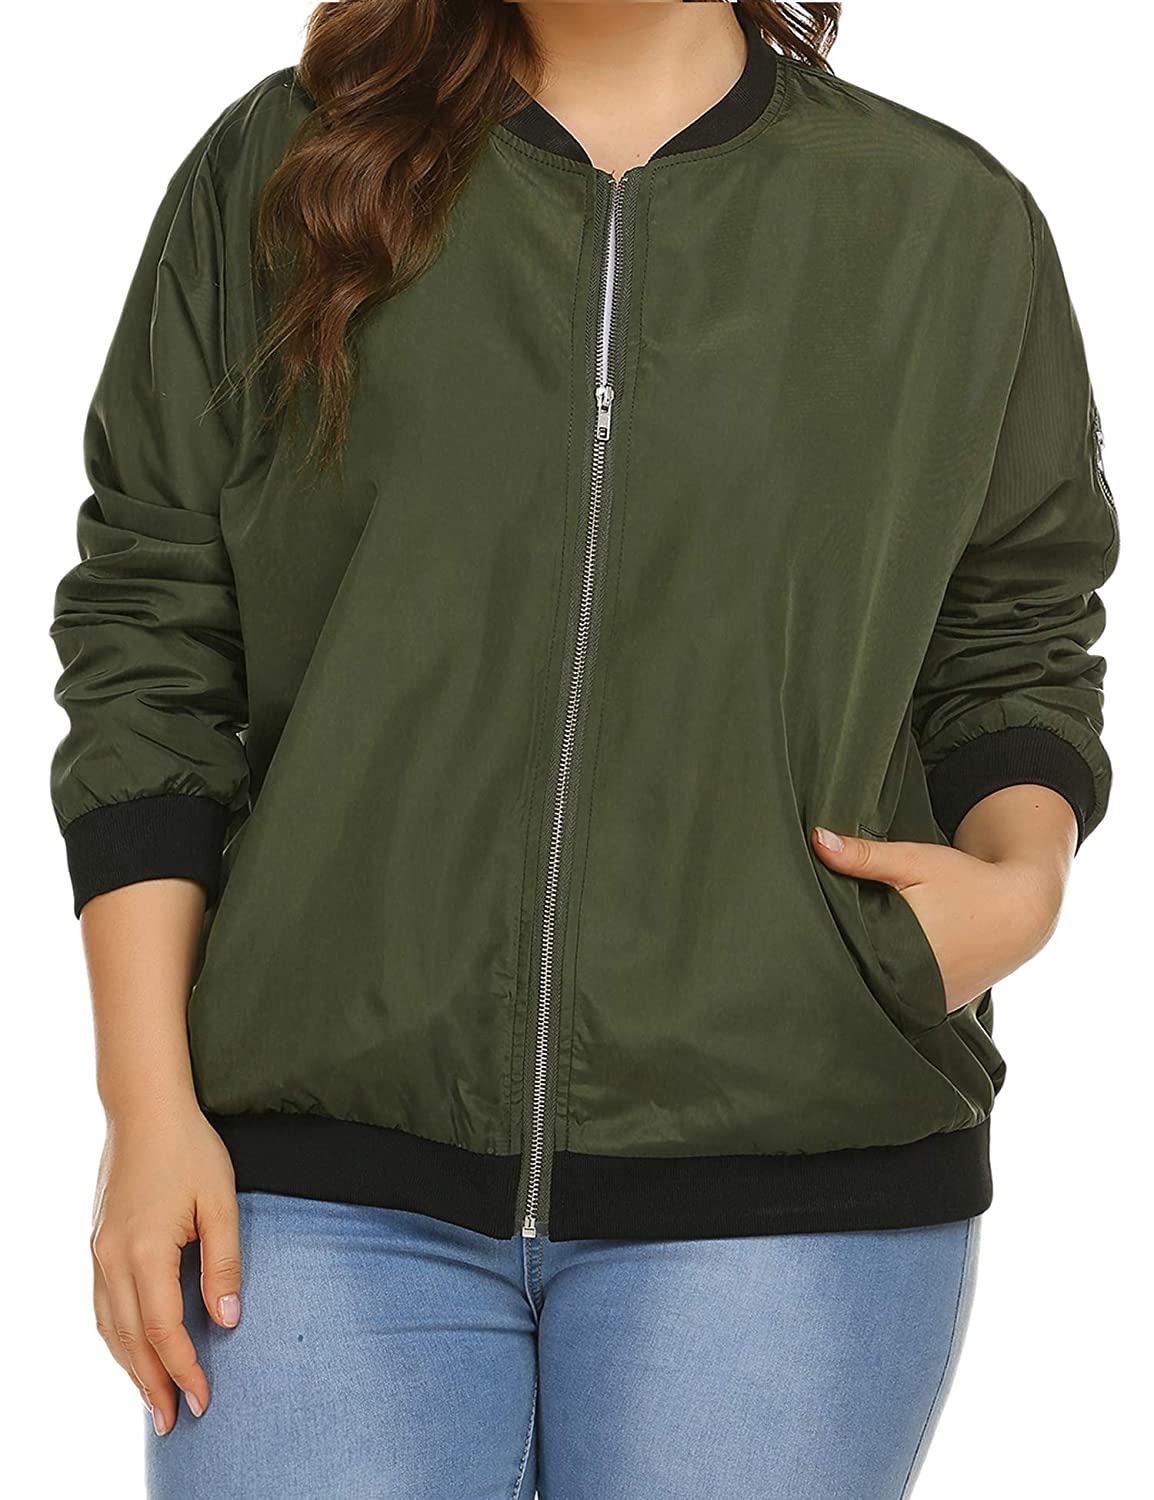 INVOLAND Womens Jacket Plus Size Bomber Jackets Lightweight with Pockets Zip Up Quilted Casual Coat Outwear